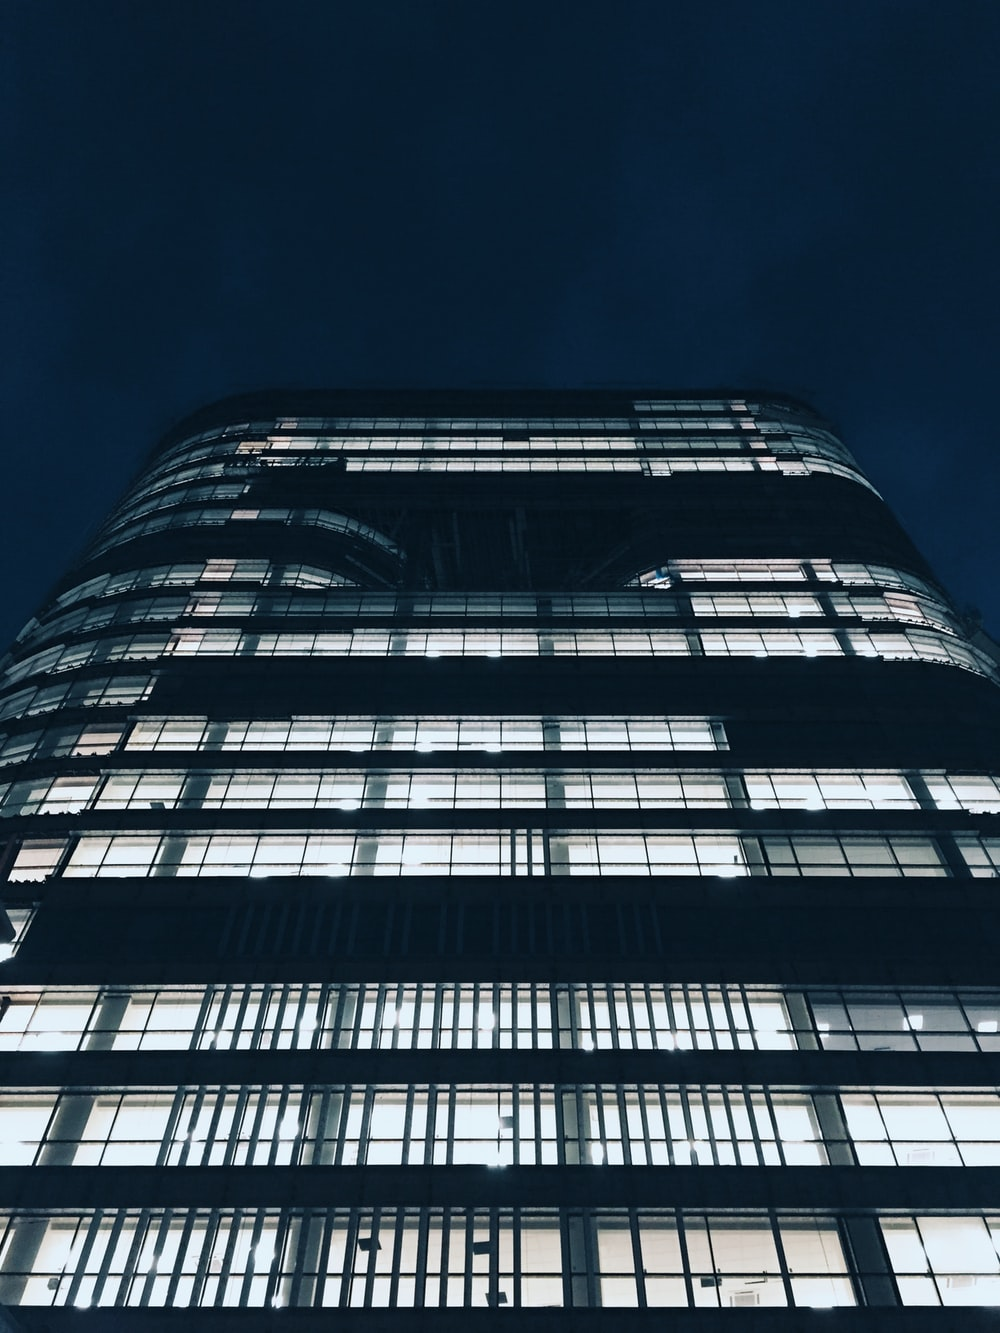 high-rise building during nighttime